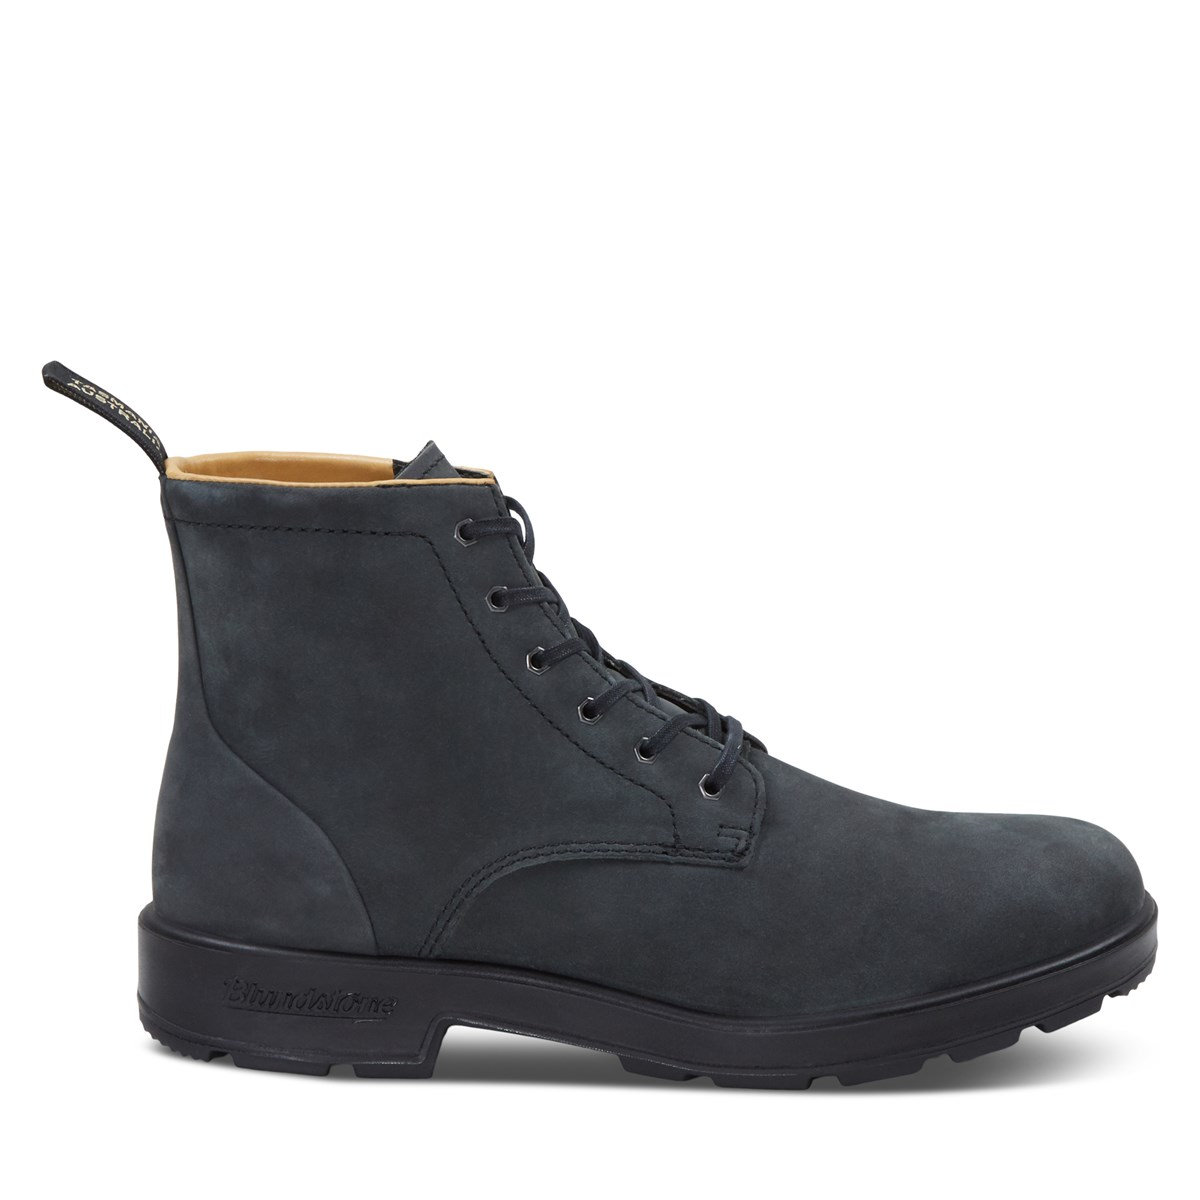 Men's 1936 Lace-Up Boots in Rustic Black